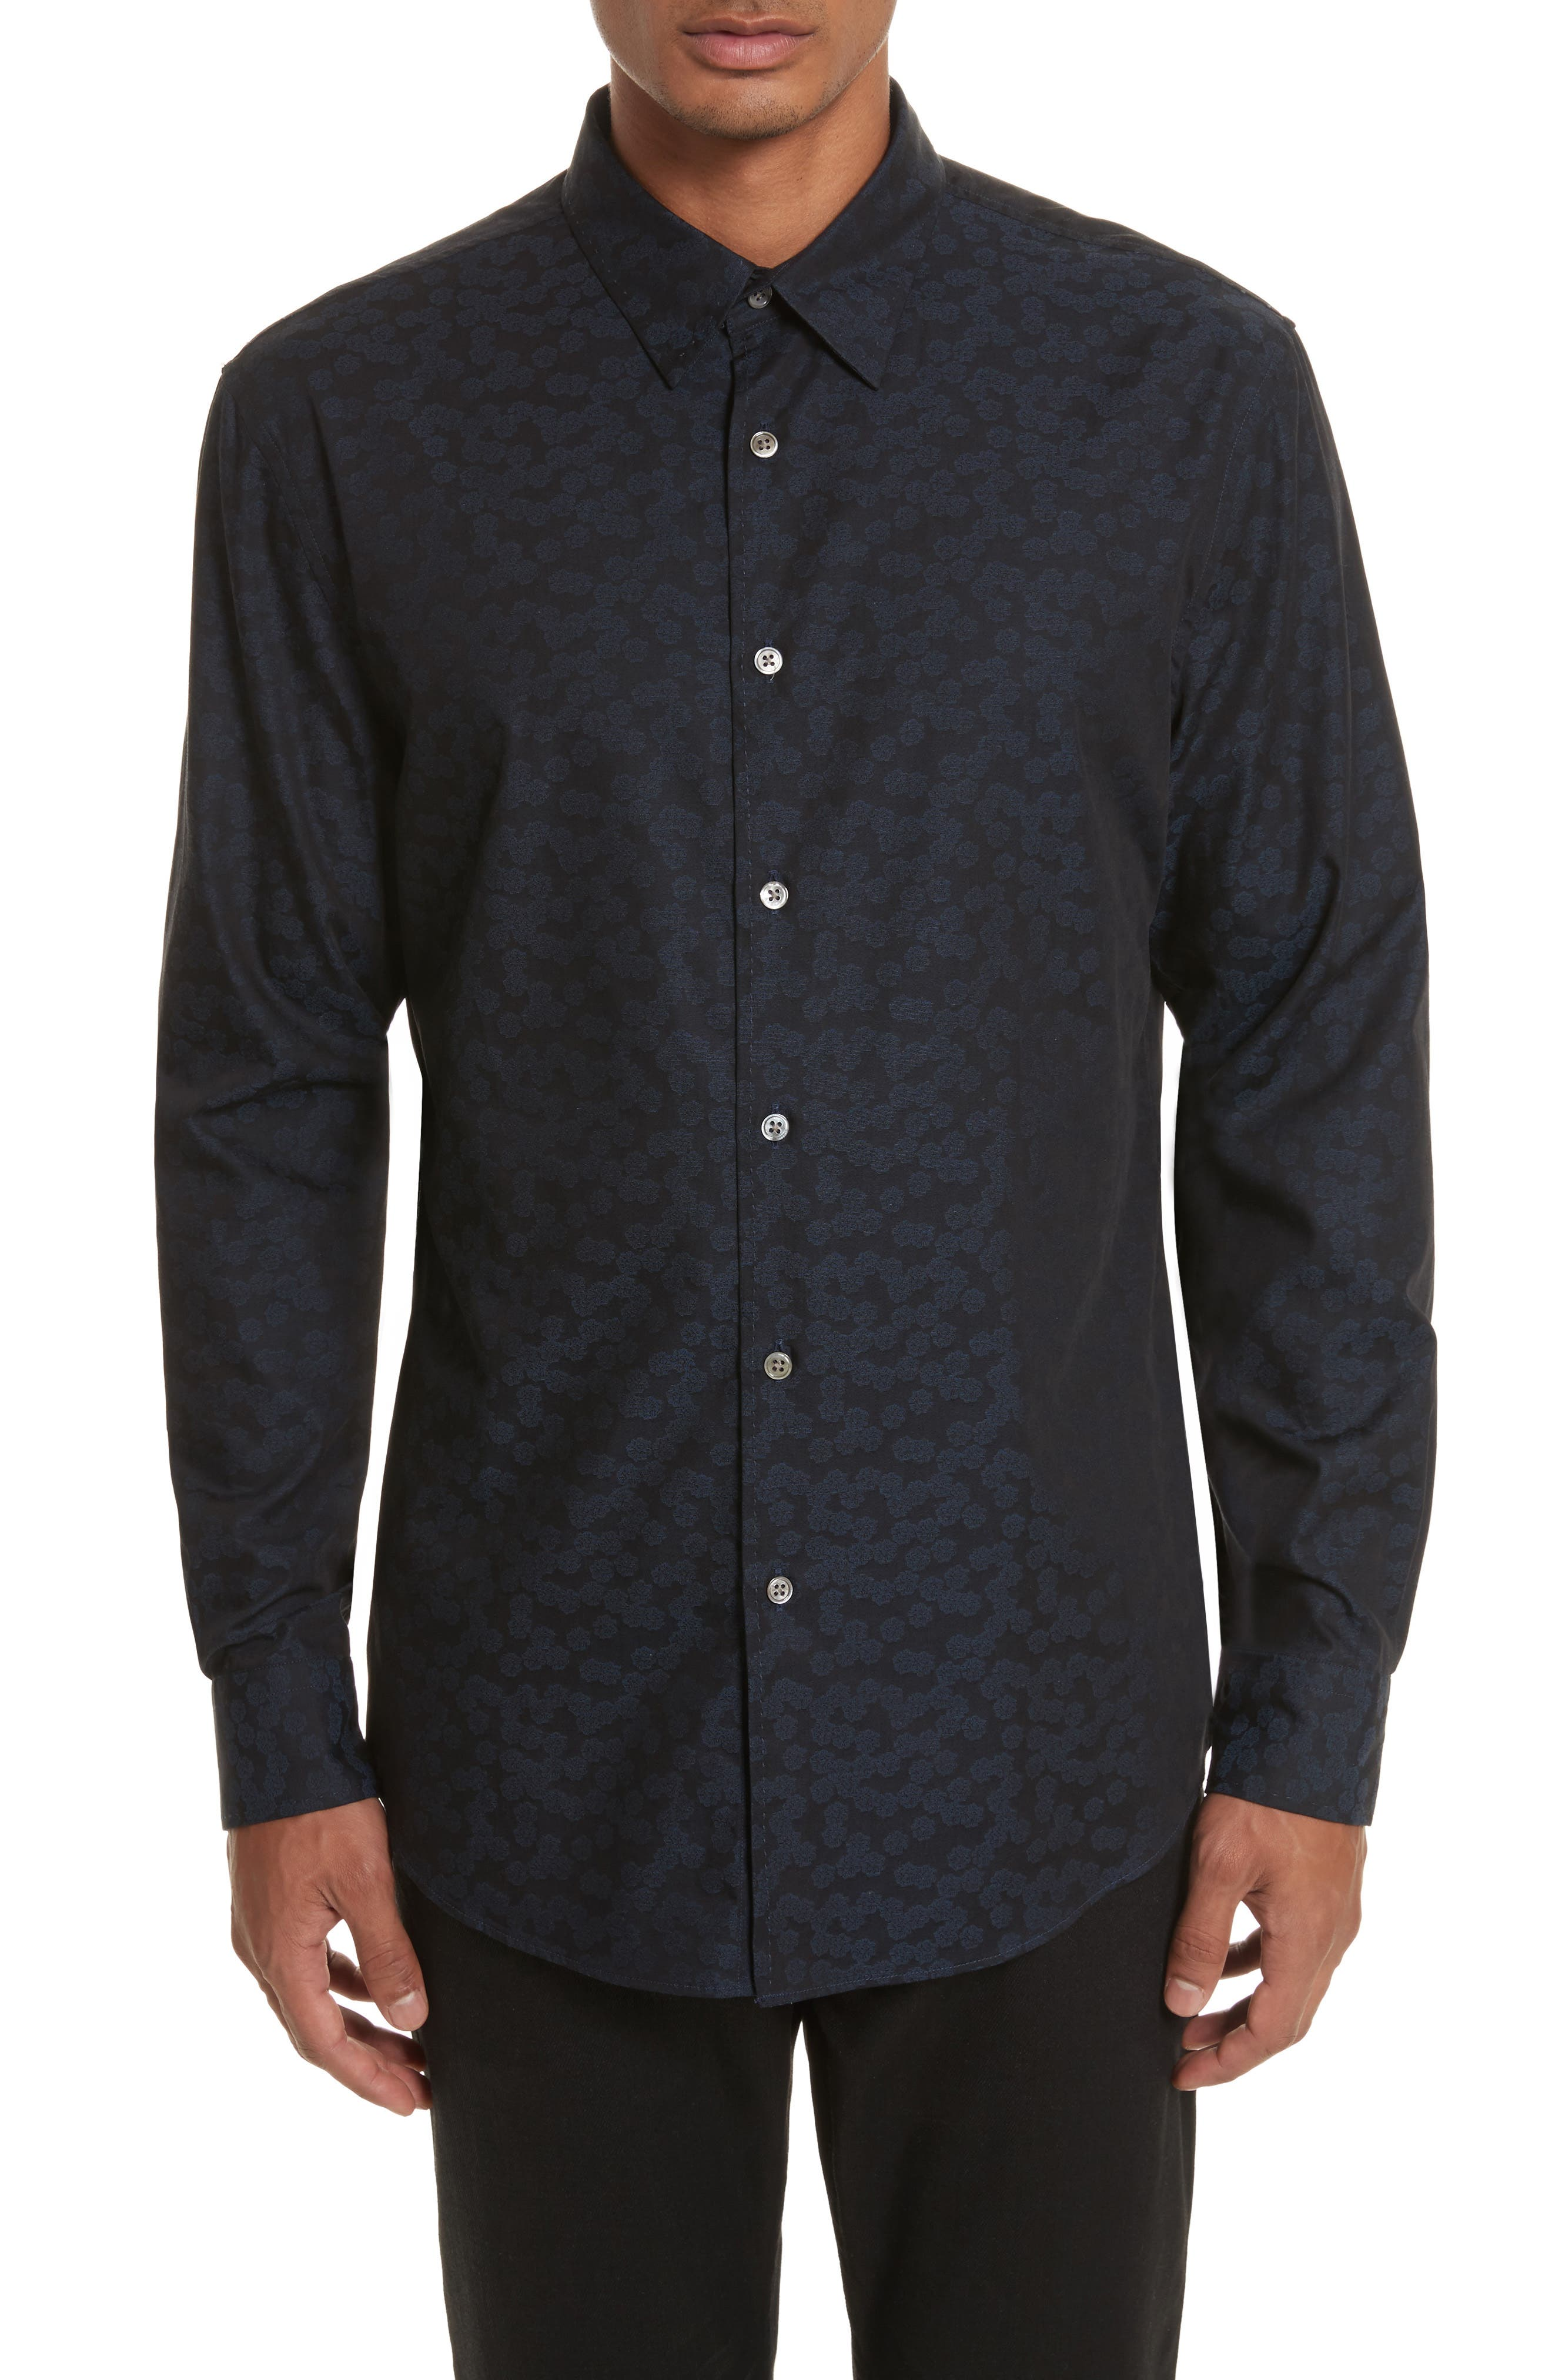 Main Image - John Varvatos Collection Classic Fit Jacquard Shirt